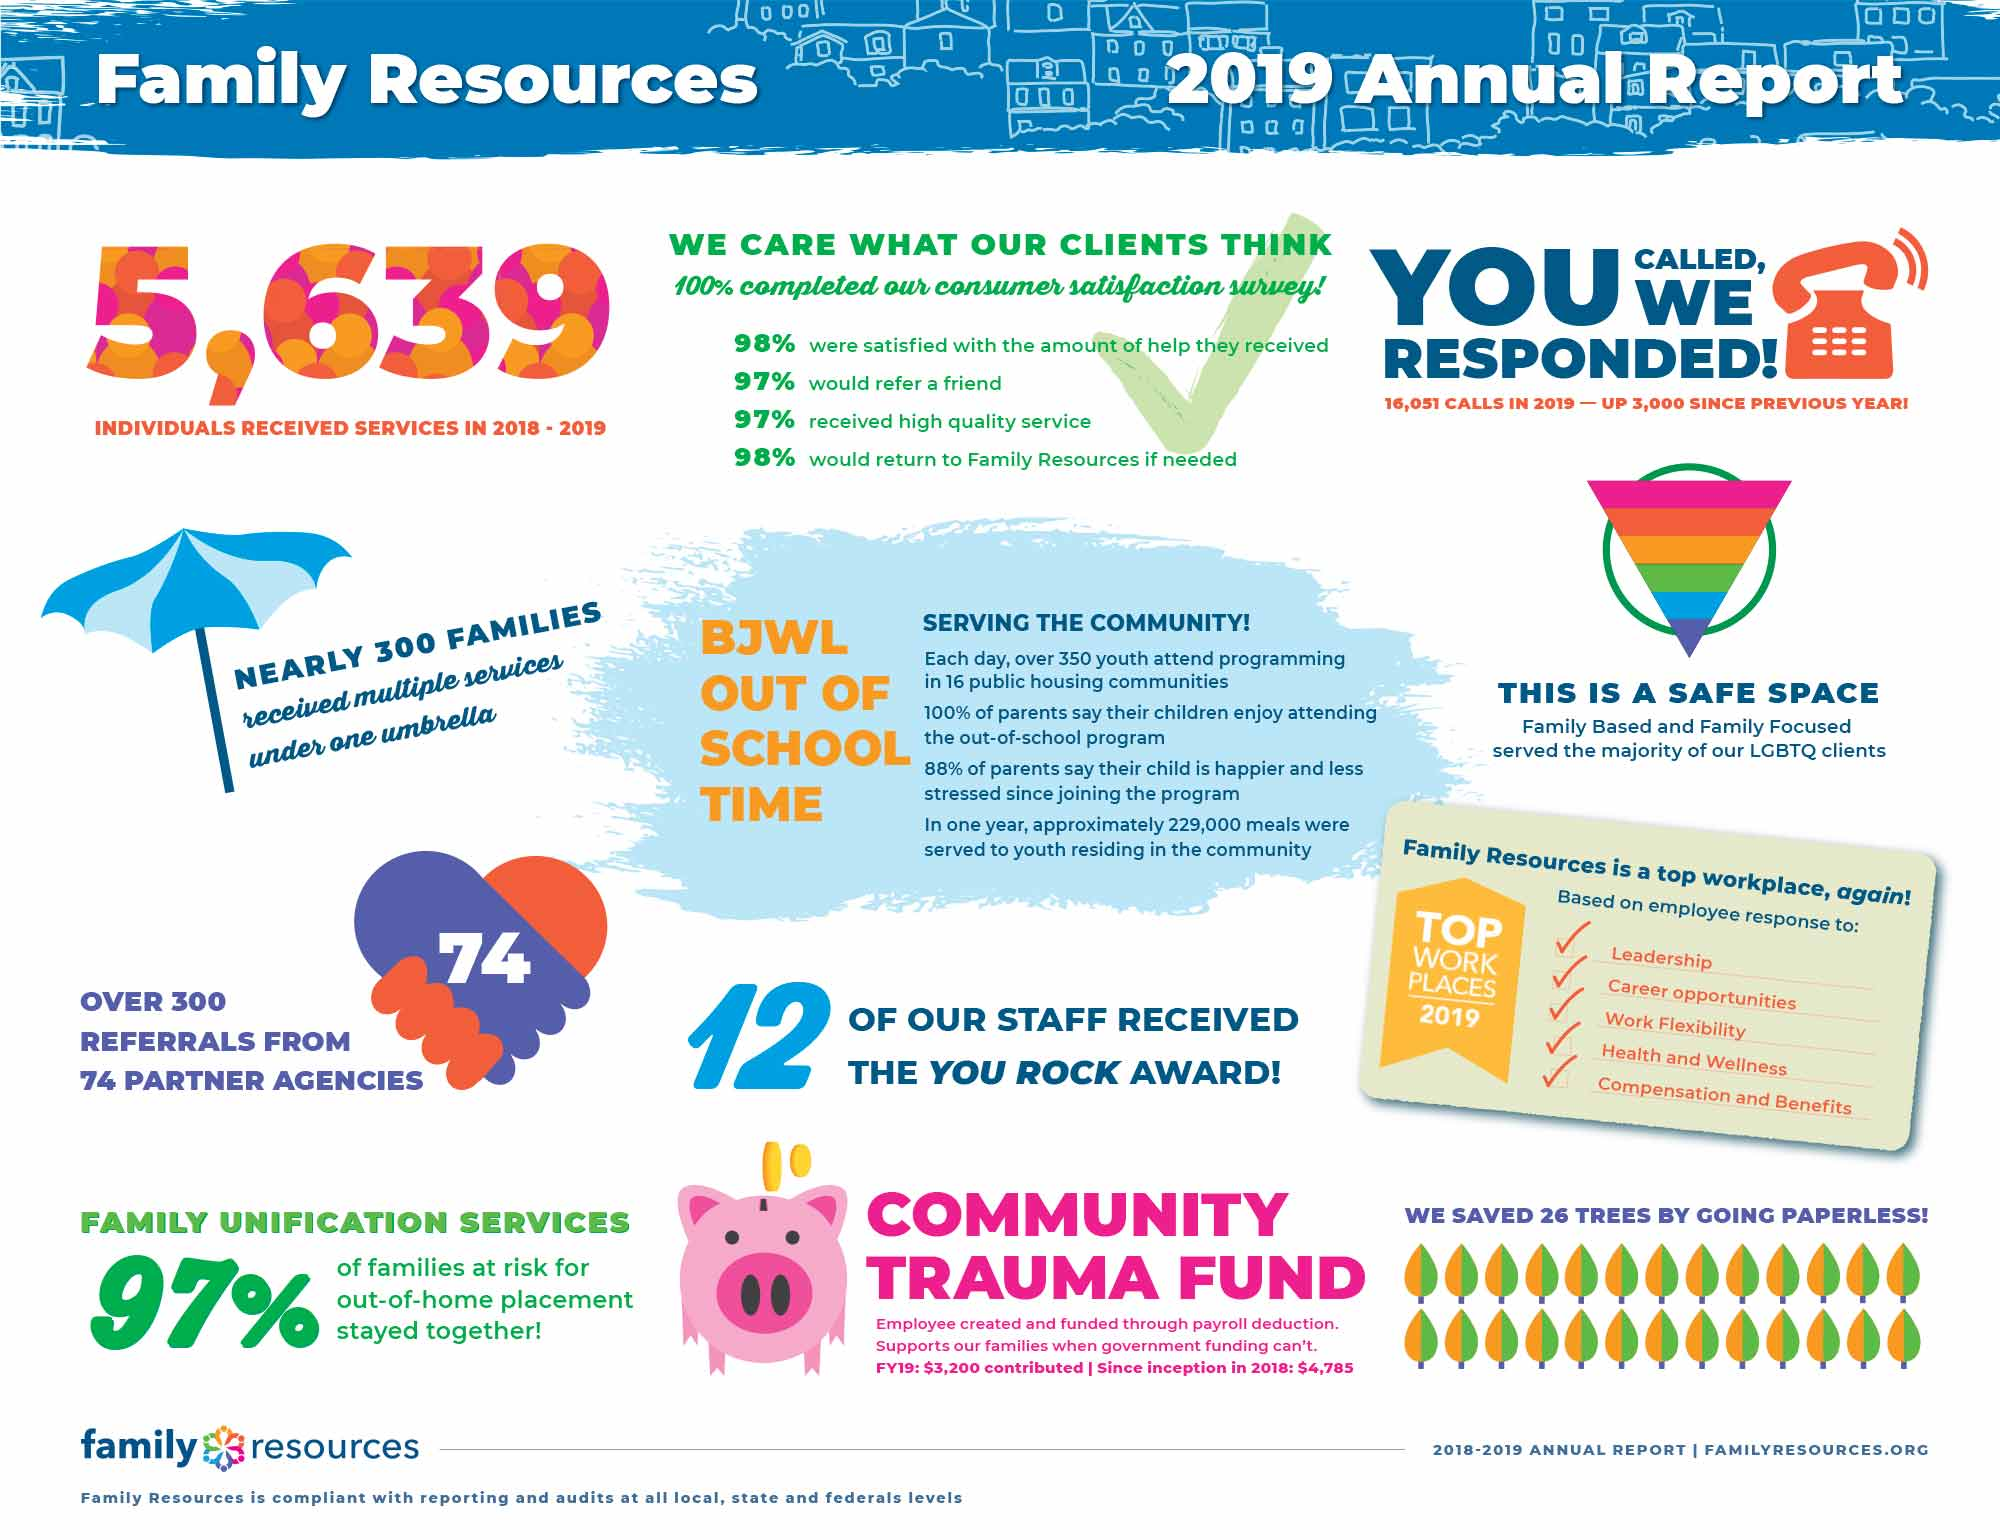 2019 Annual Report graphic for Family Resources